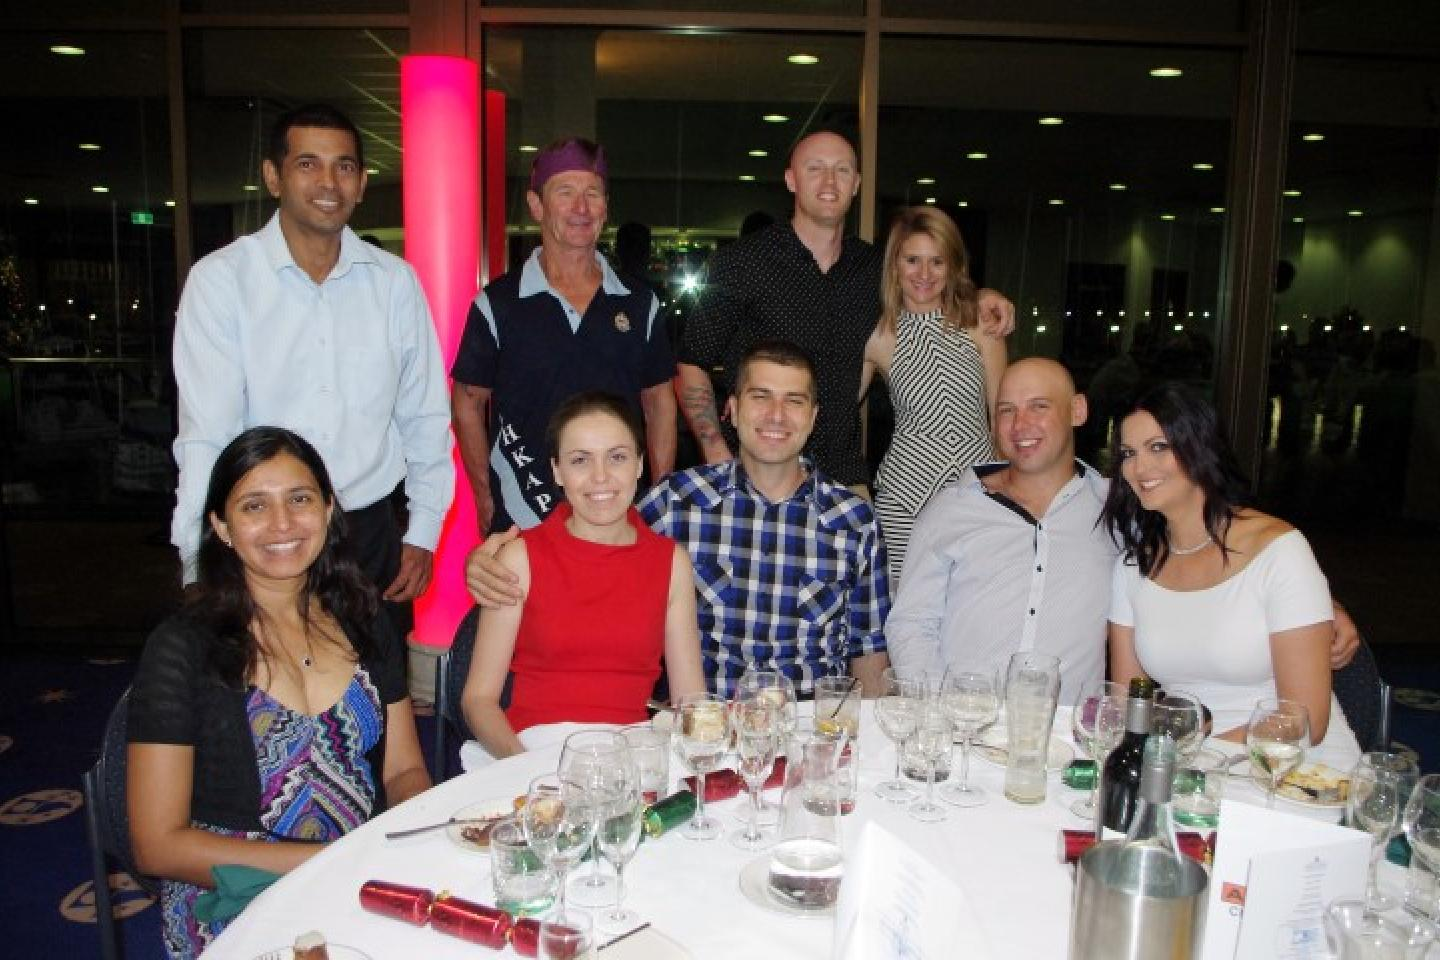 Vajira (left) and Dinesh (standing) Pathirage, Tabita and Abel Adascalitei, Gordon Waycott (standing), Michael Davey and Laysa Leal (standing) and Joel and Gillian Daffin.